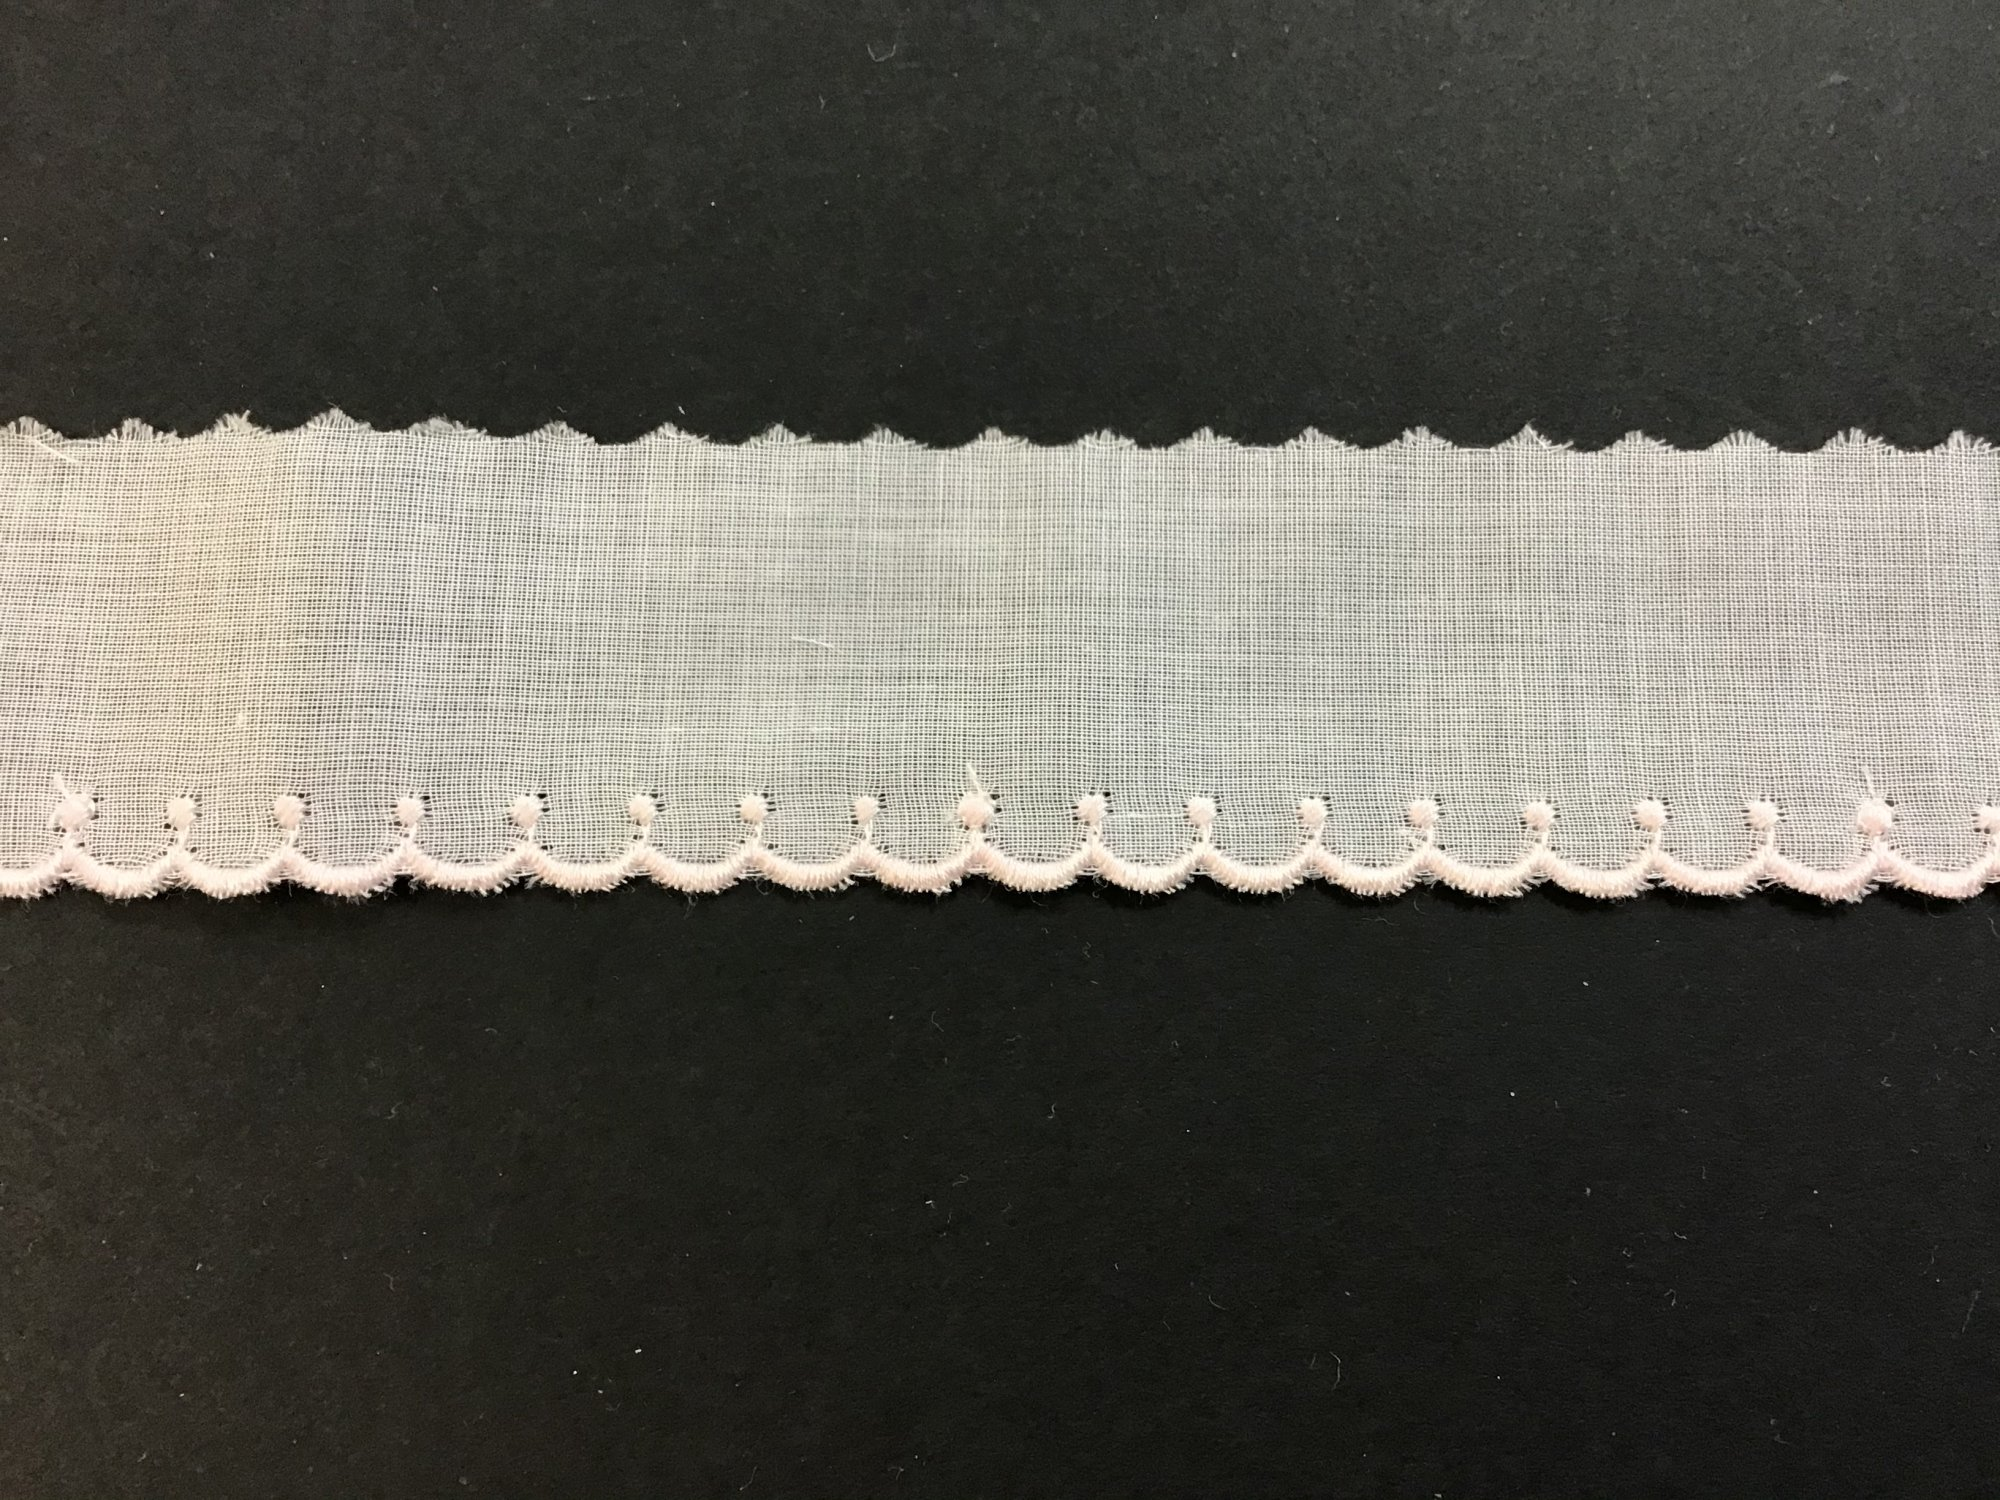 Swiss Embroidered Edging 1 Inch White with Pink 729804-02A